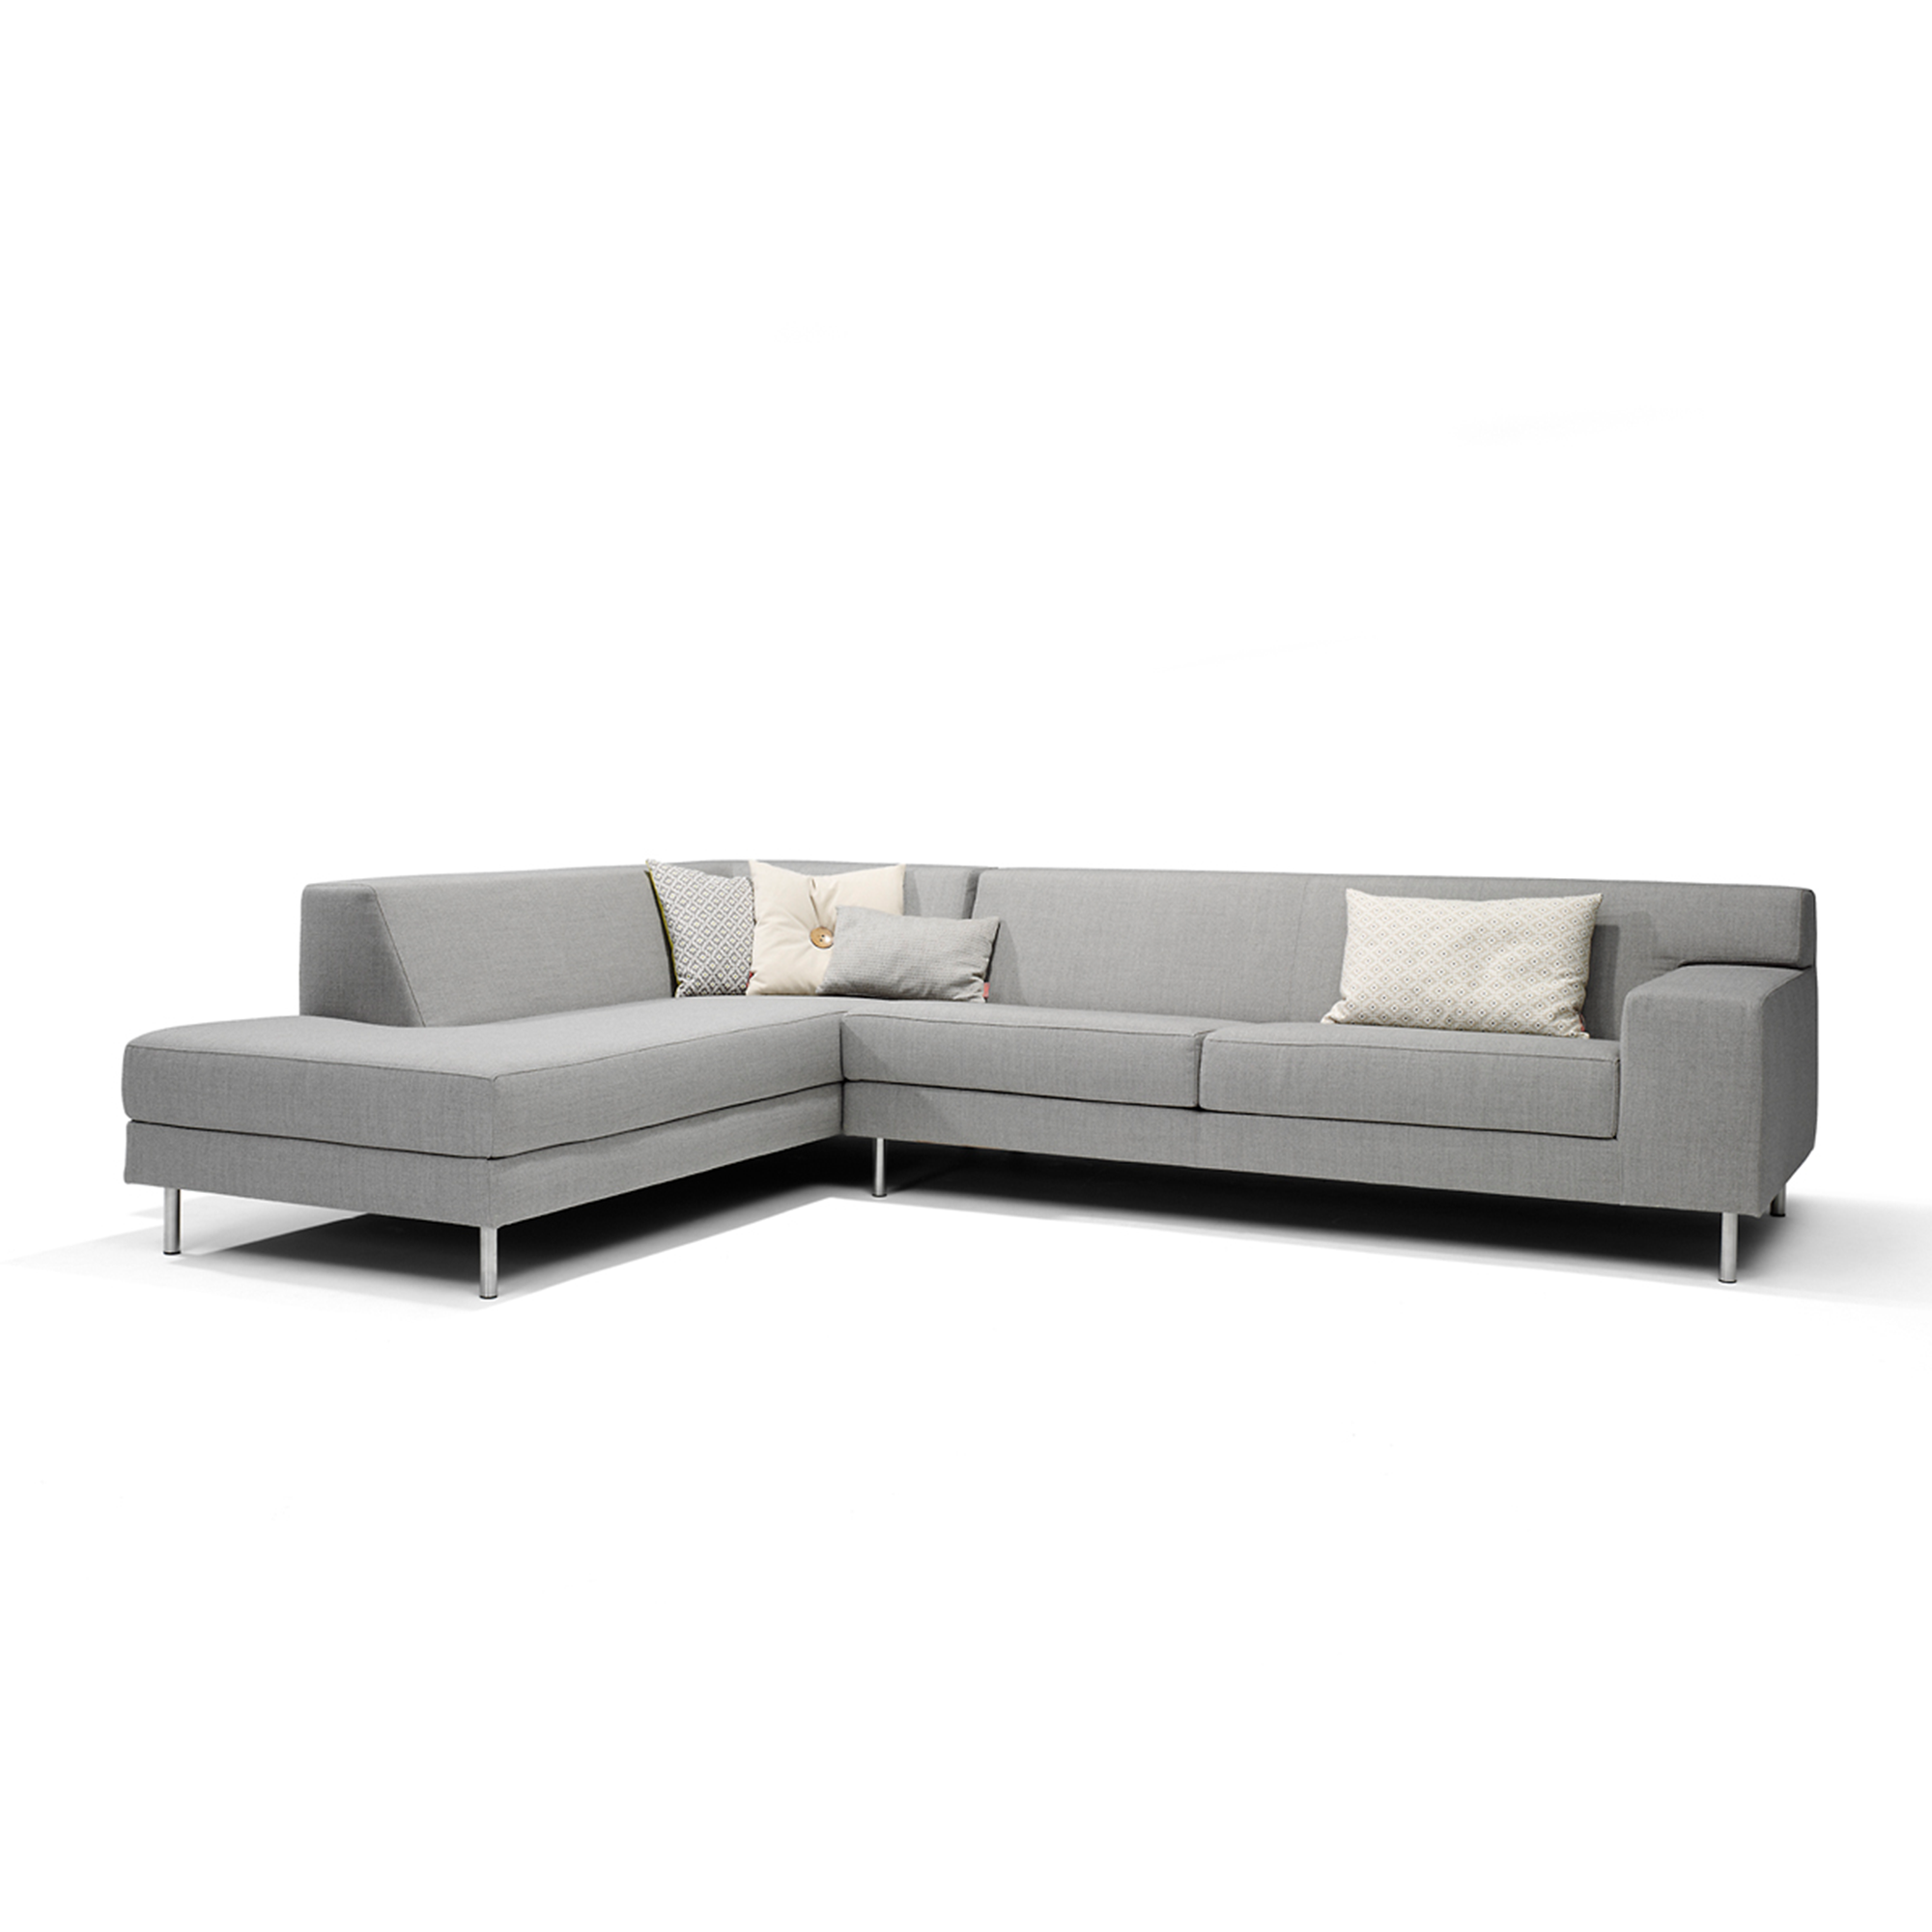 Danca design furniture, design bank, bank met chaise longue